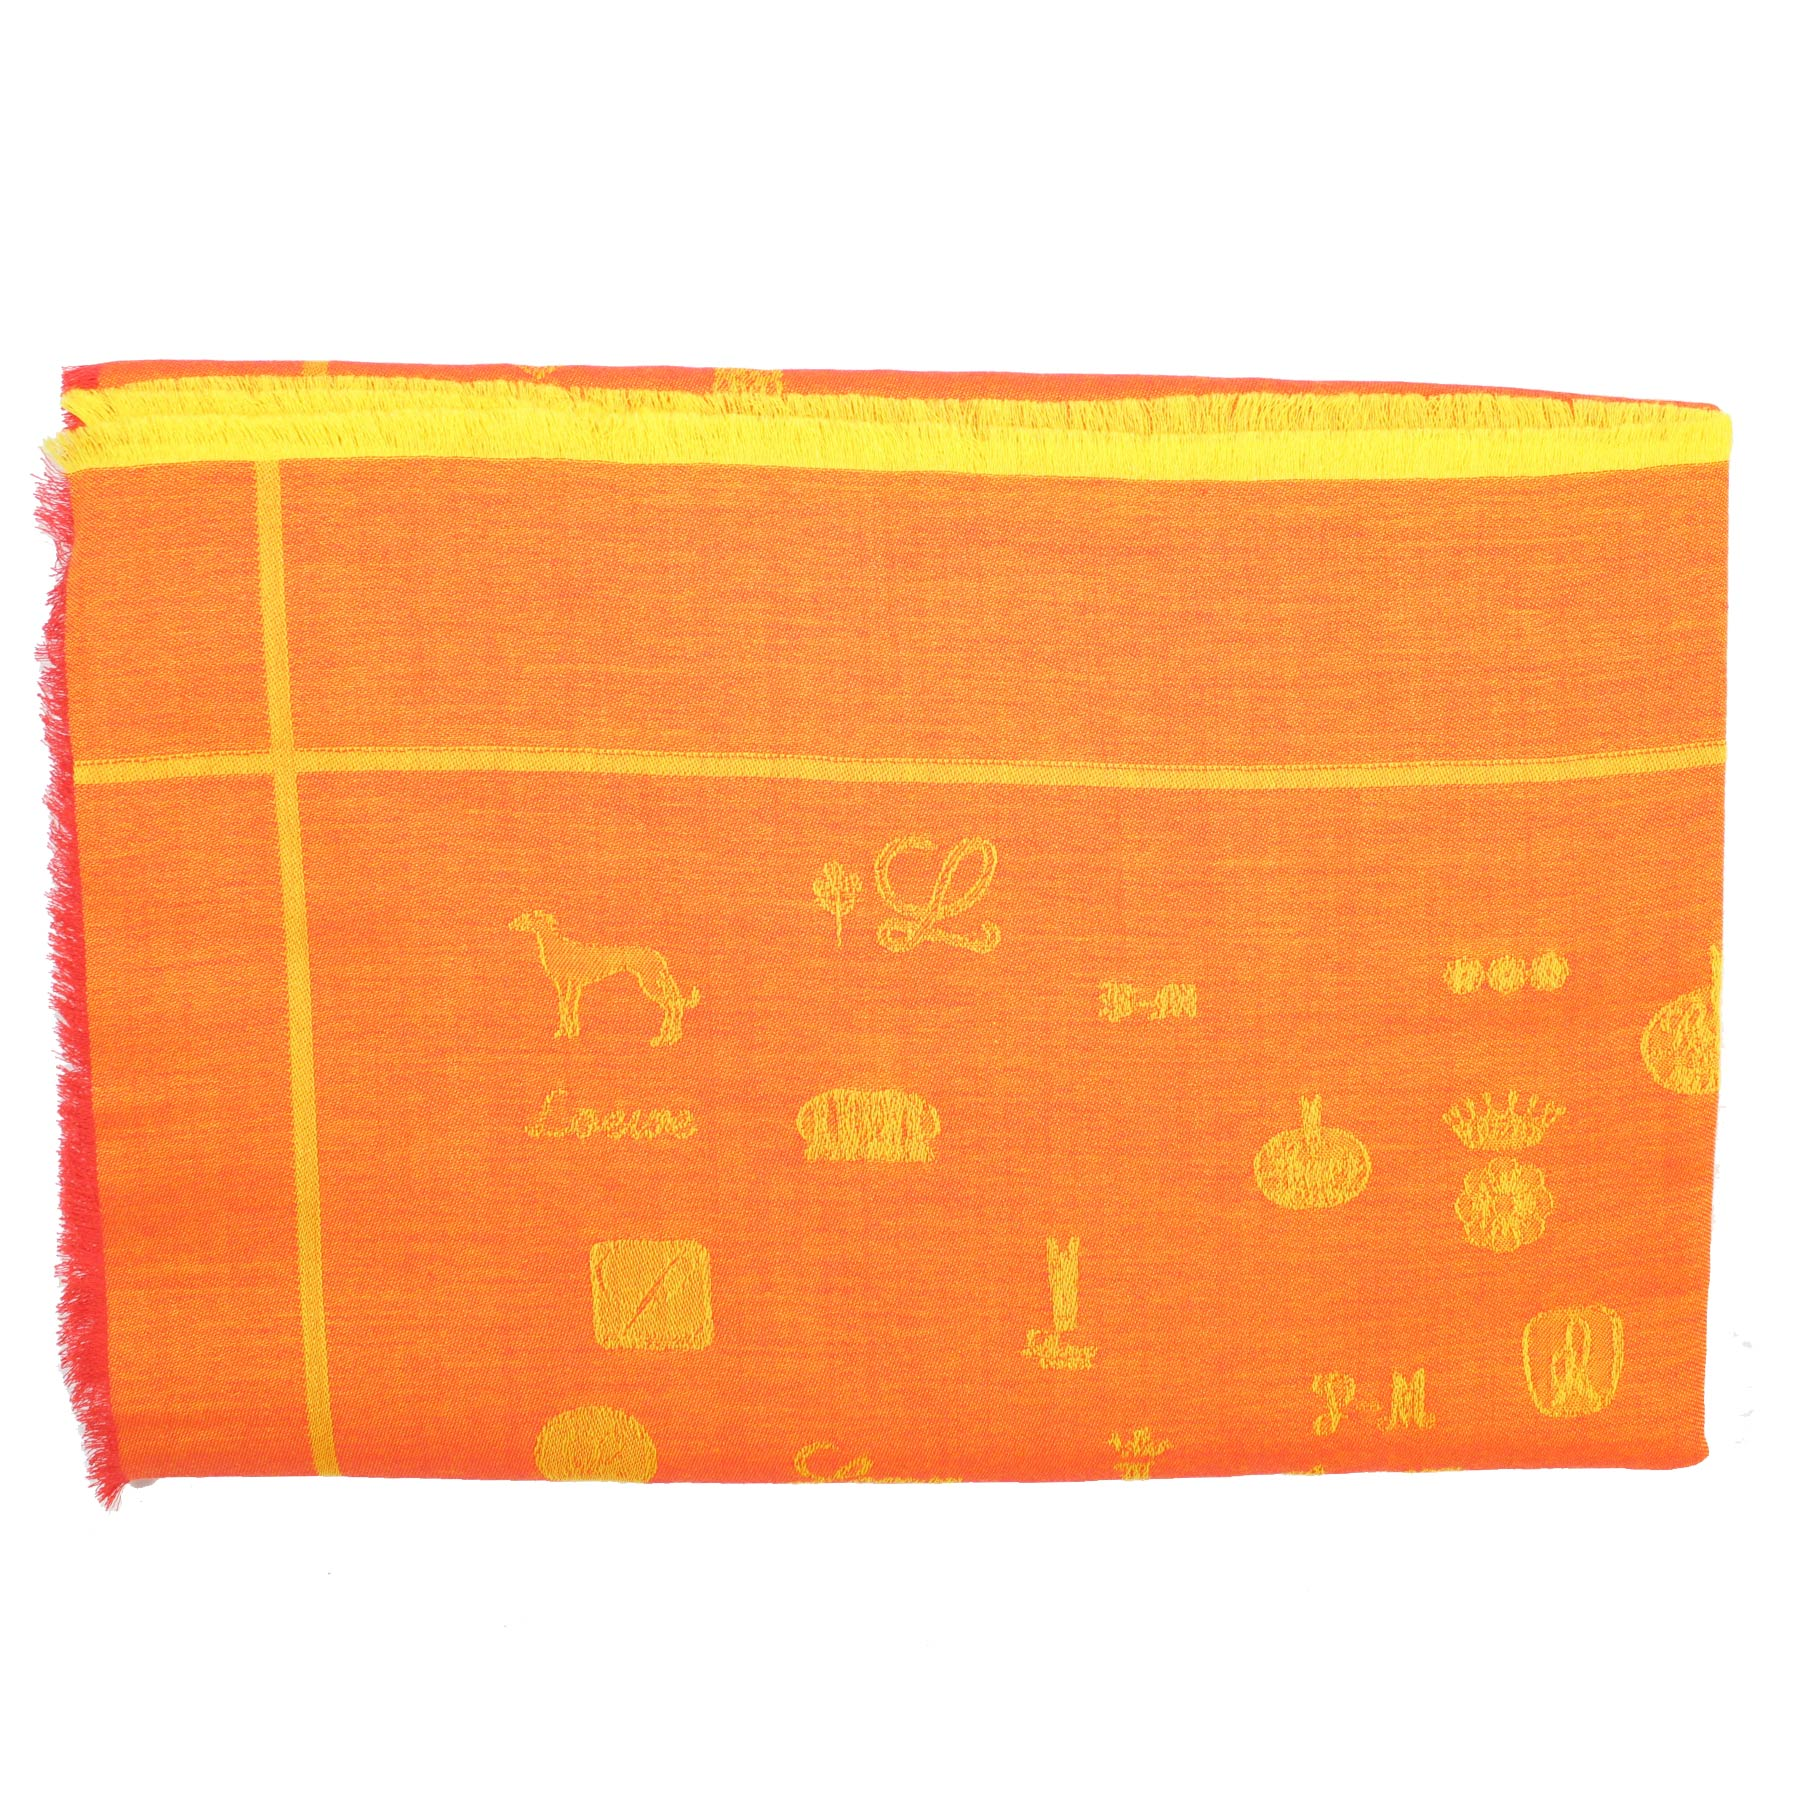 Loewe Scarf Orange Yellow Novelty -